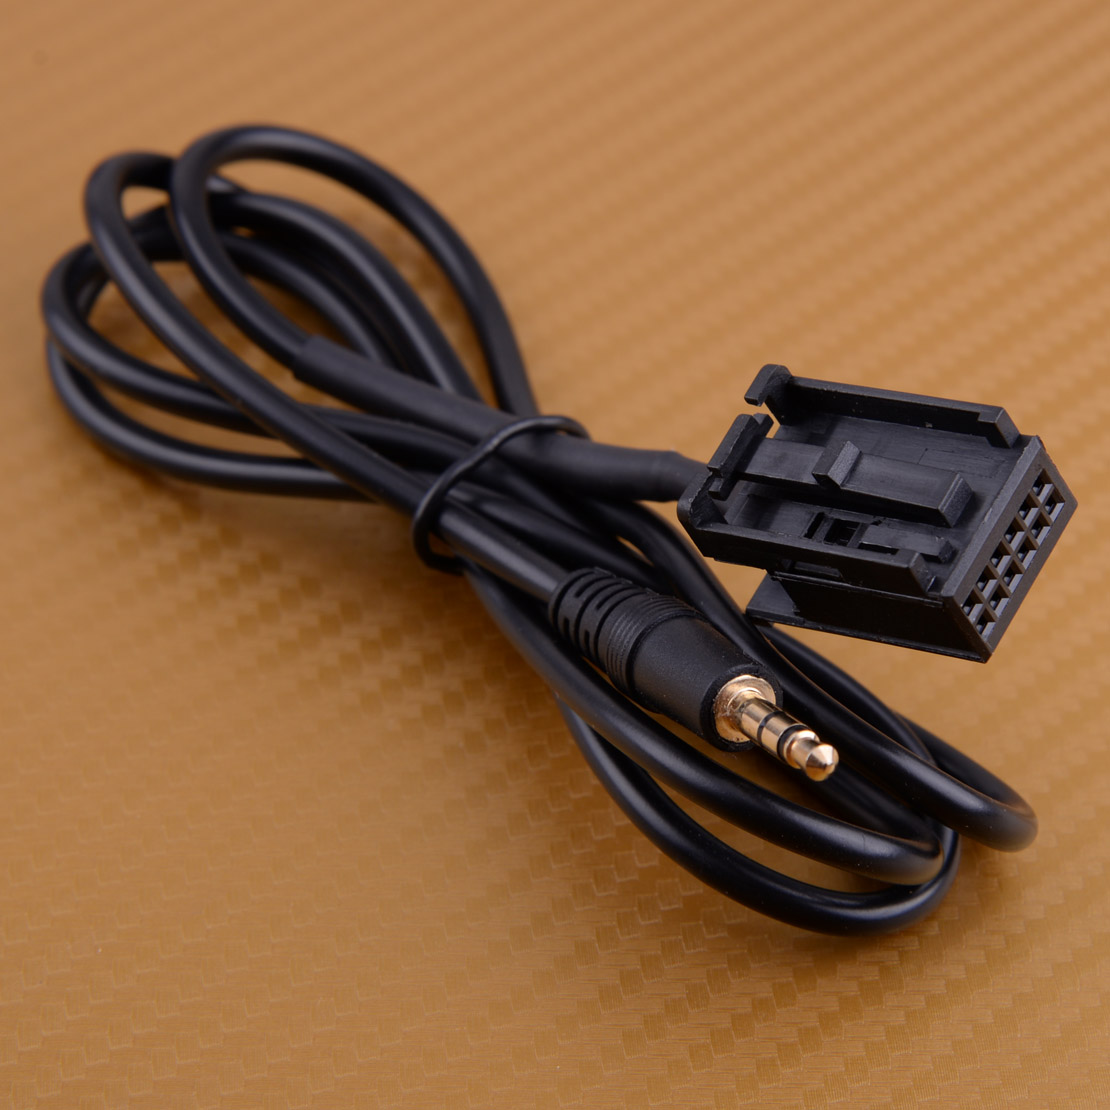 CITALL Fit for Vauxhall CD30 DVD iPod <font><b>6000CD</b></font> Input Adapter Cable Lead stereo Radio <font><b>MP3</b></font> 3.5mm AUX Jack Interface image